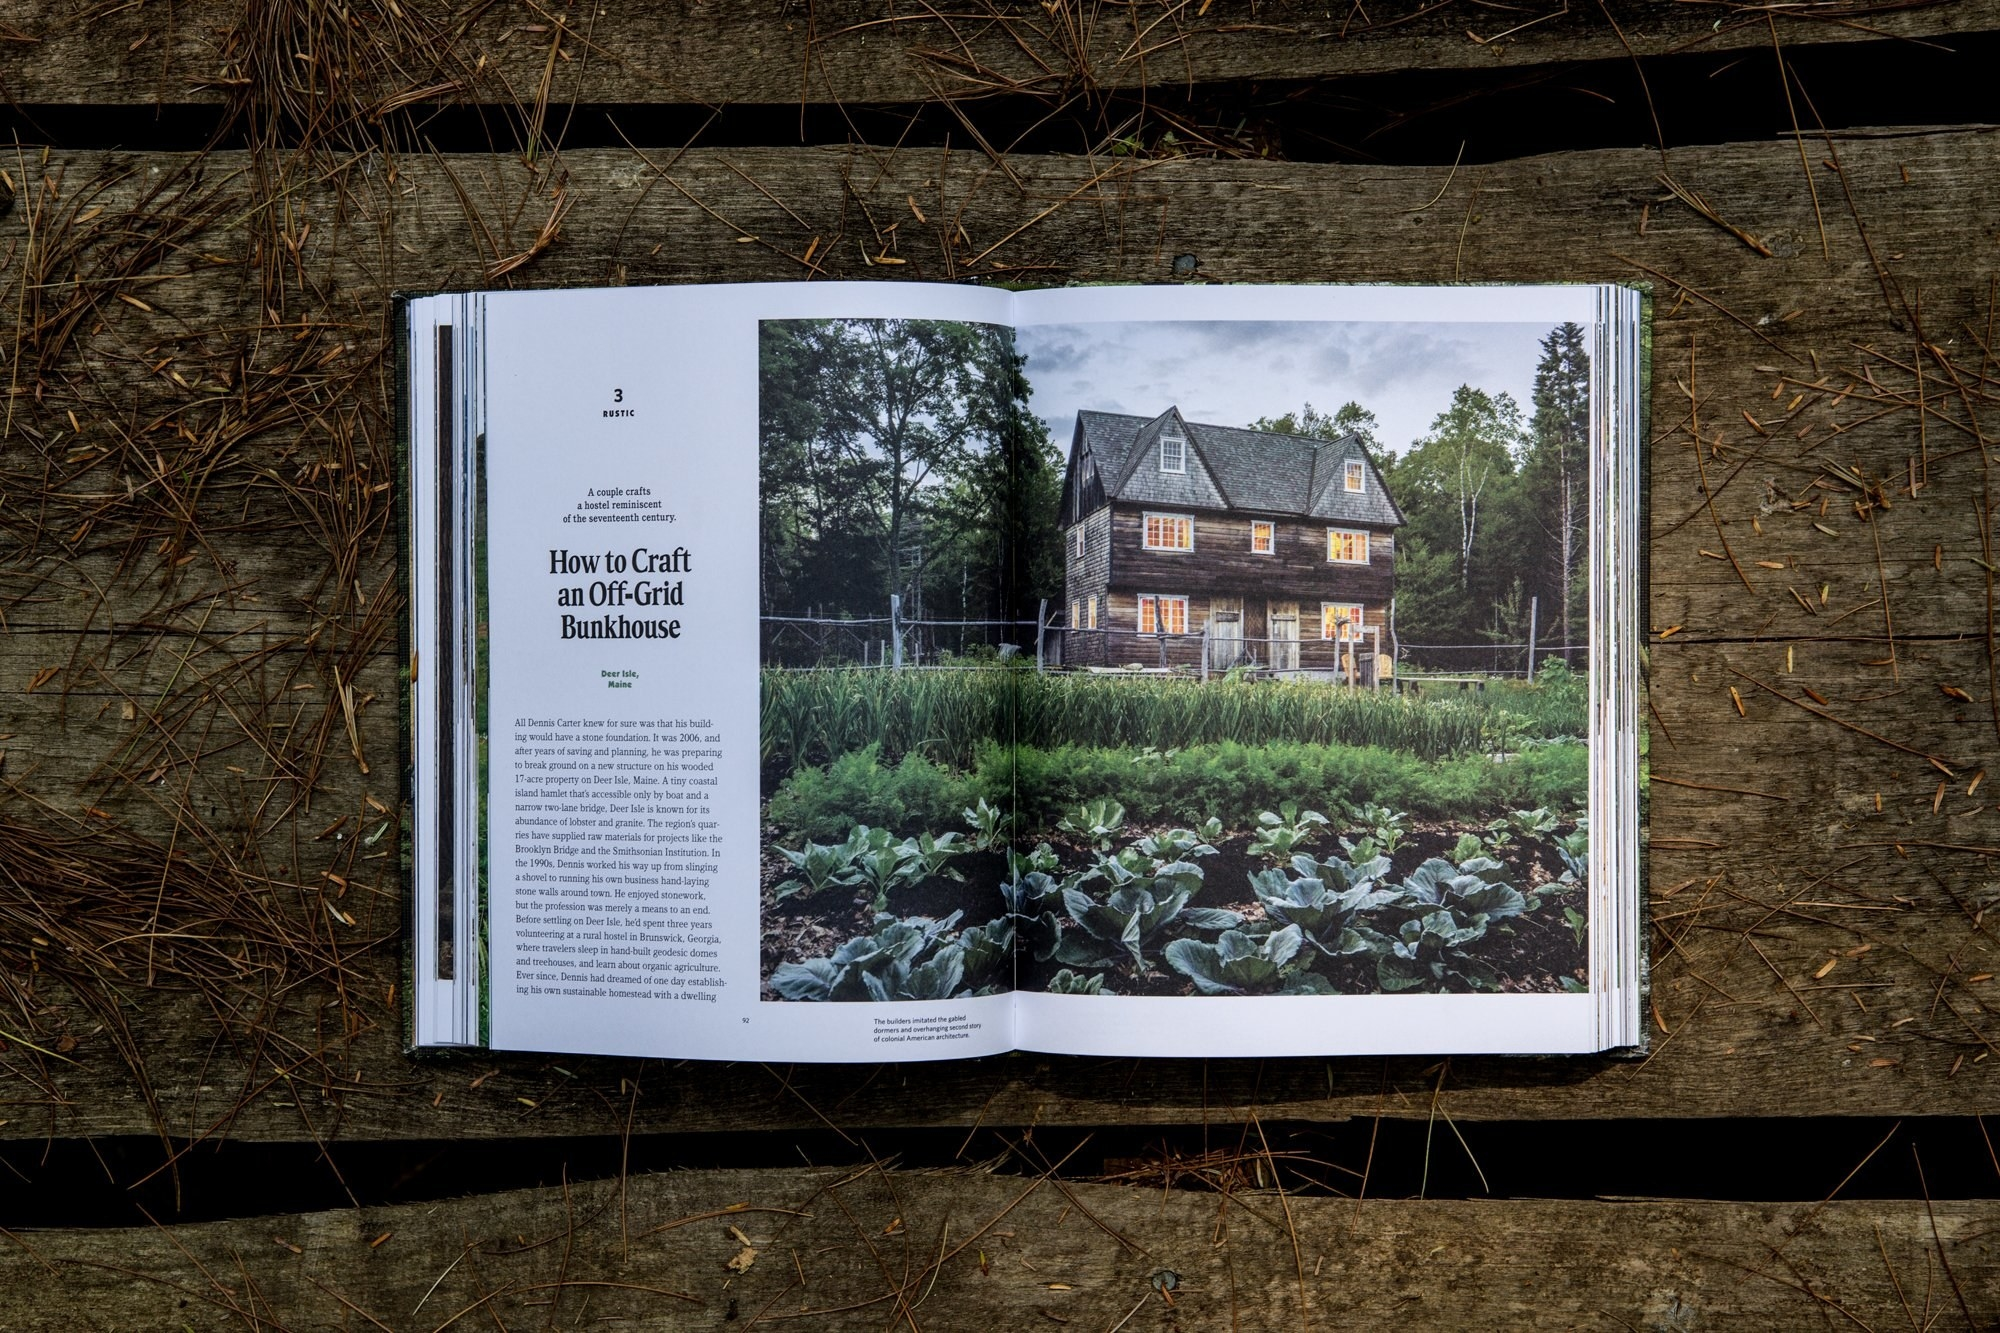 The book open to a page on how to craft an off-grid house